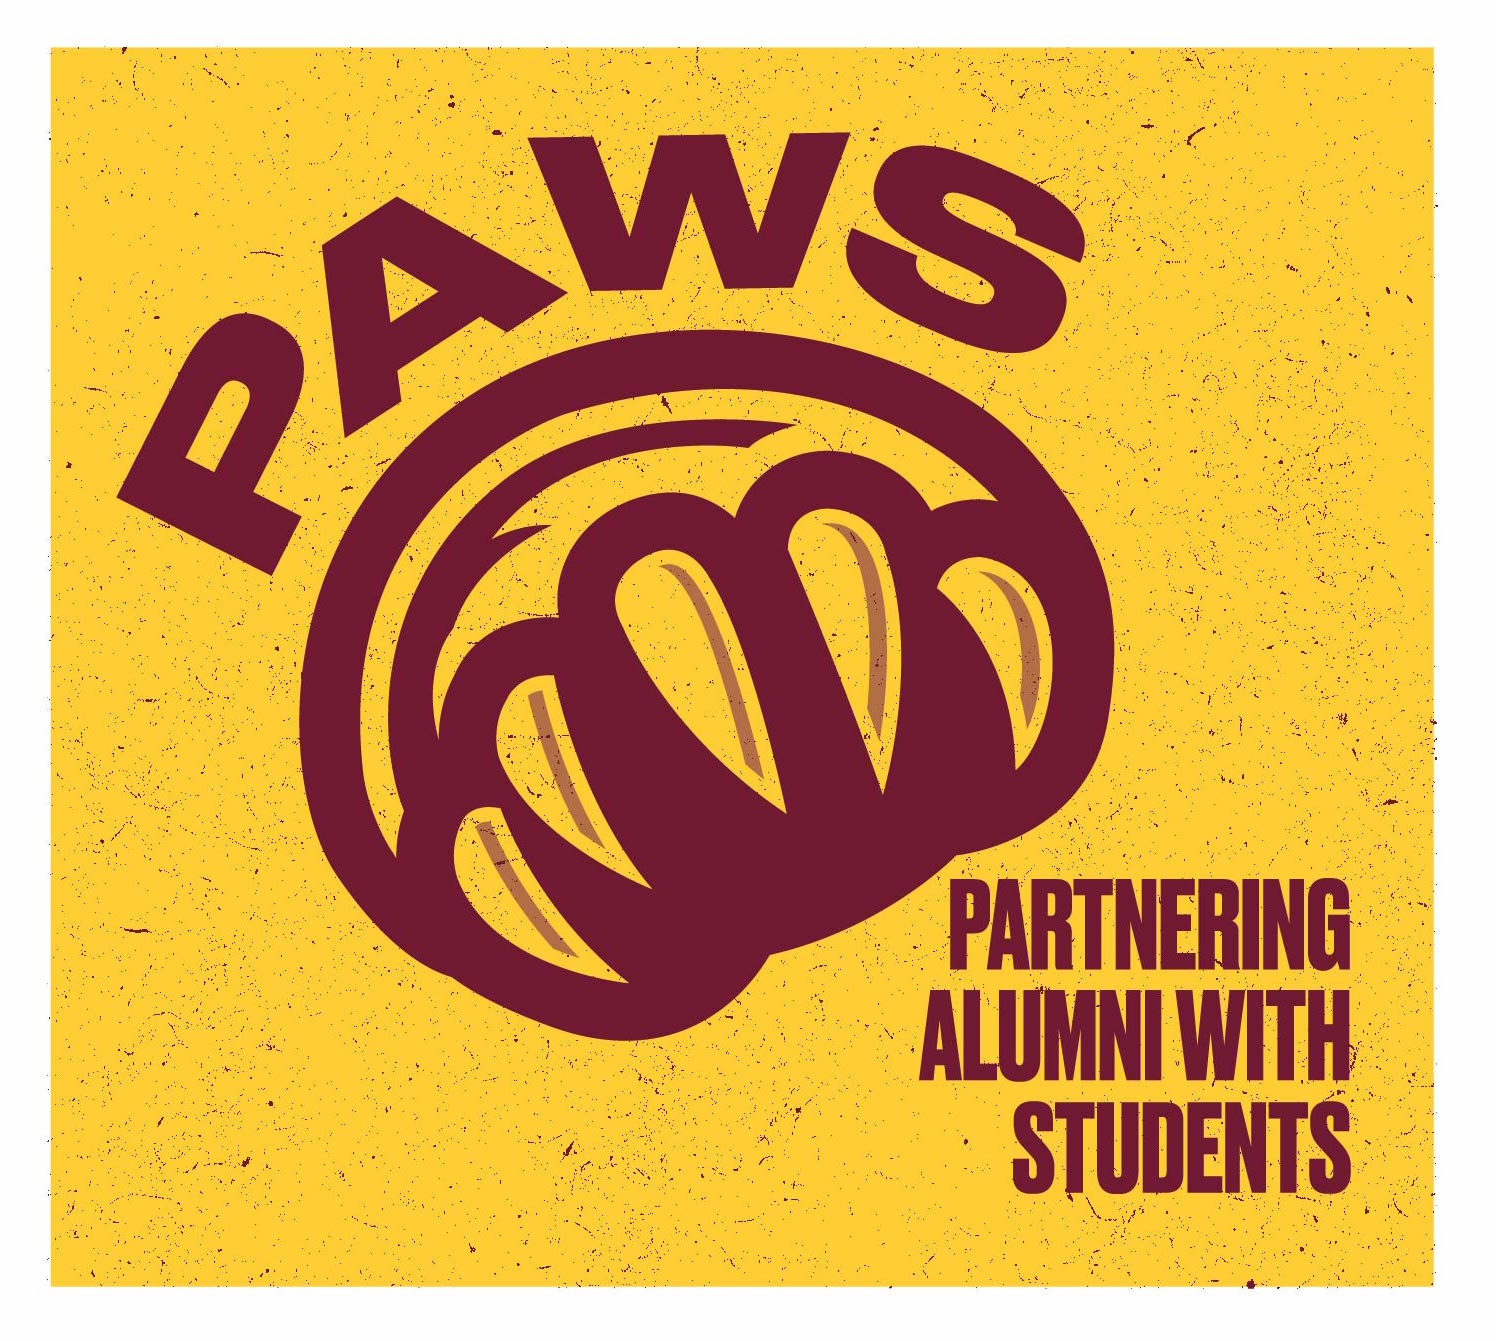 PAWS partnering alumni with students